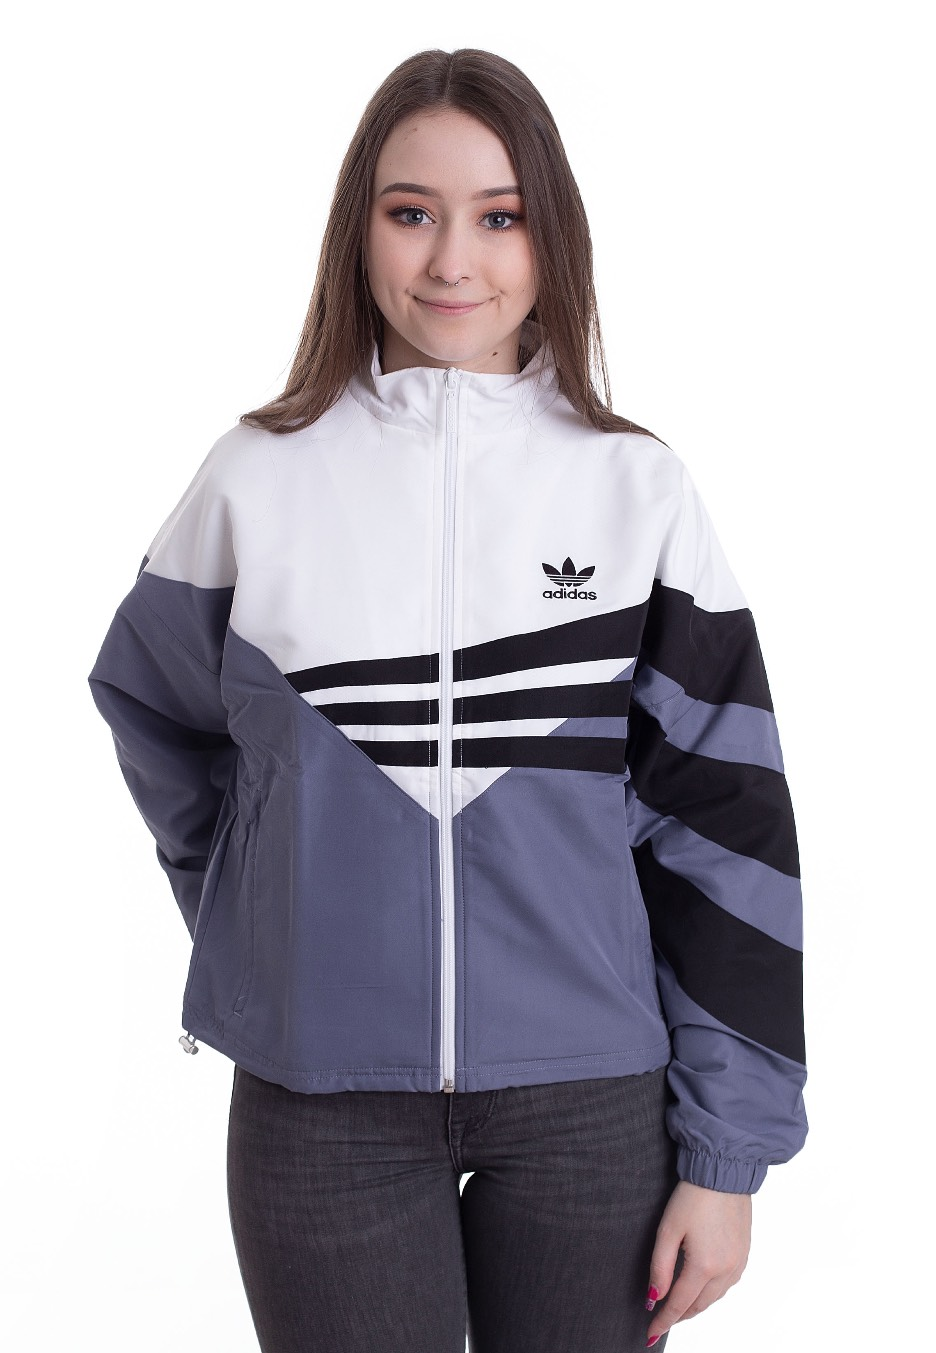 Jacken für Frauen - Adidas Track Top Rawind White Black Jacken  - Onlineshop IMPERICON